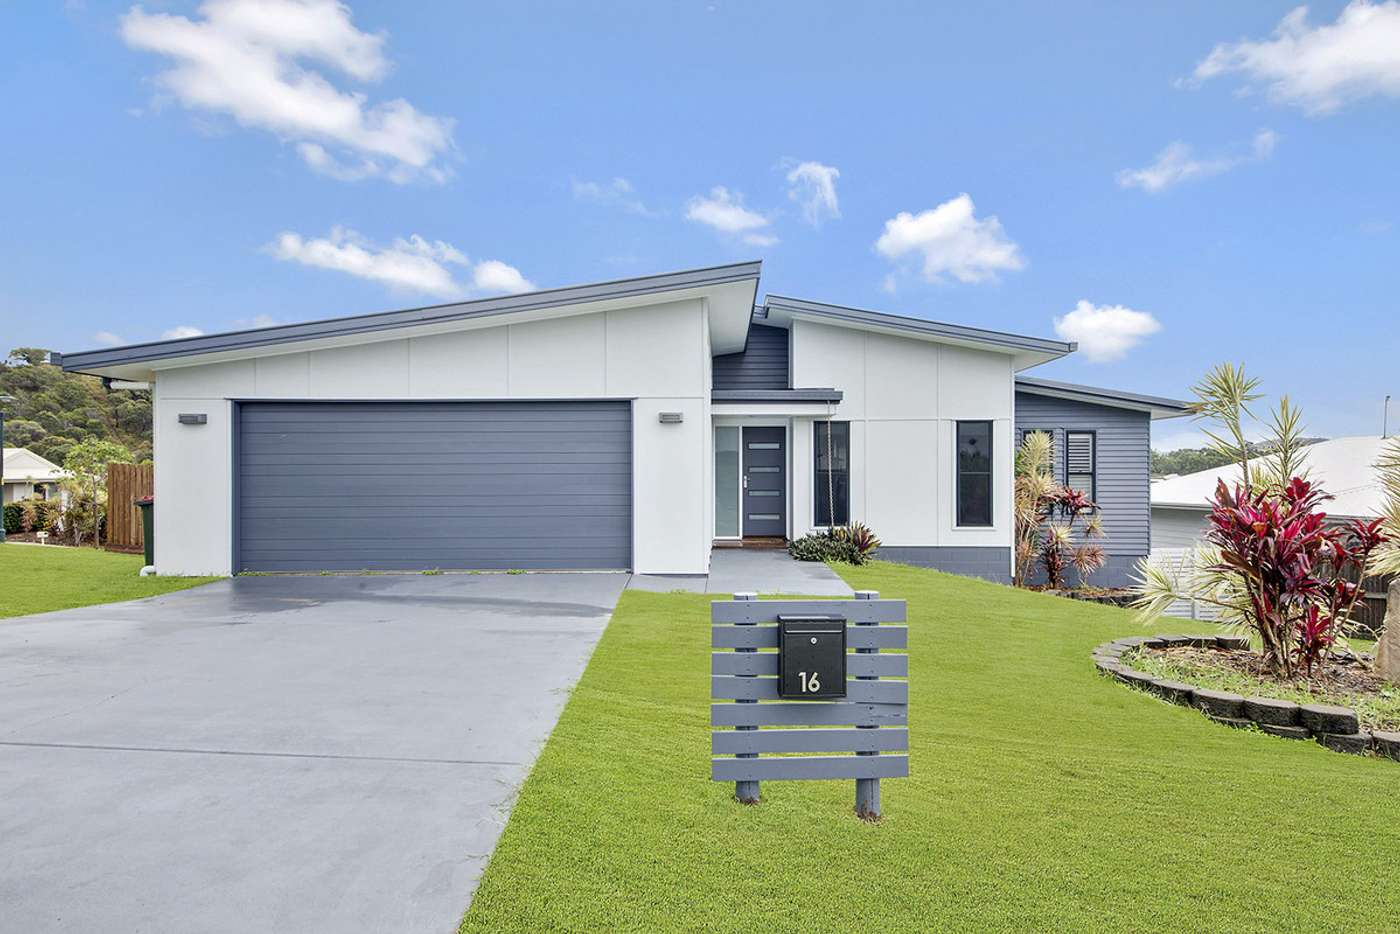 Main view of Homely house listing, 16 Plantation Drive, Taroomball QLD 4703